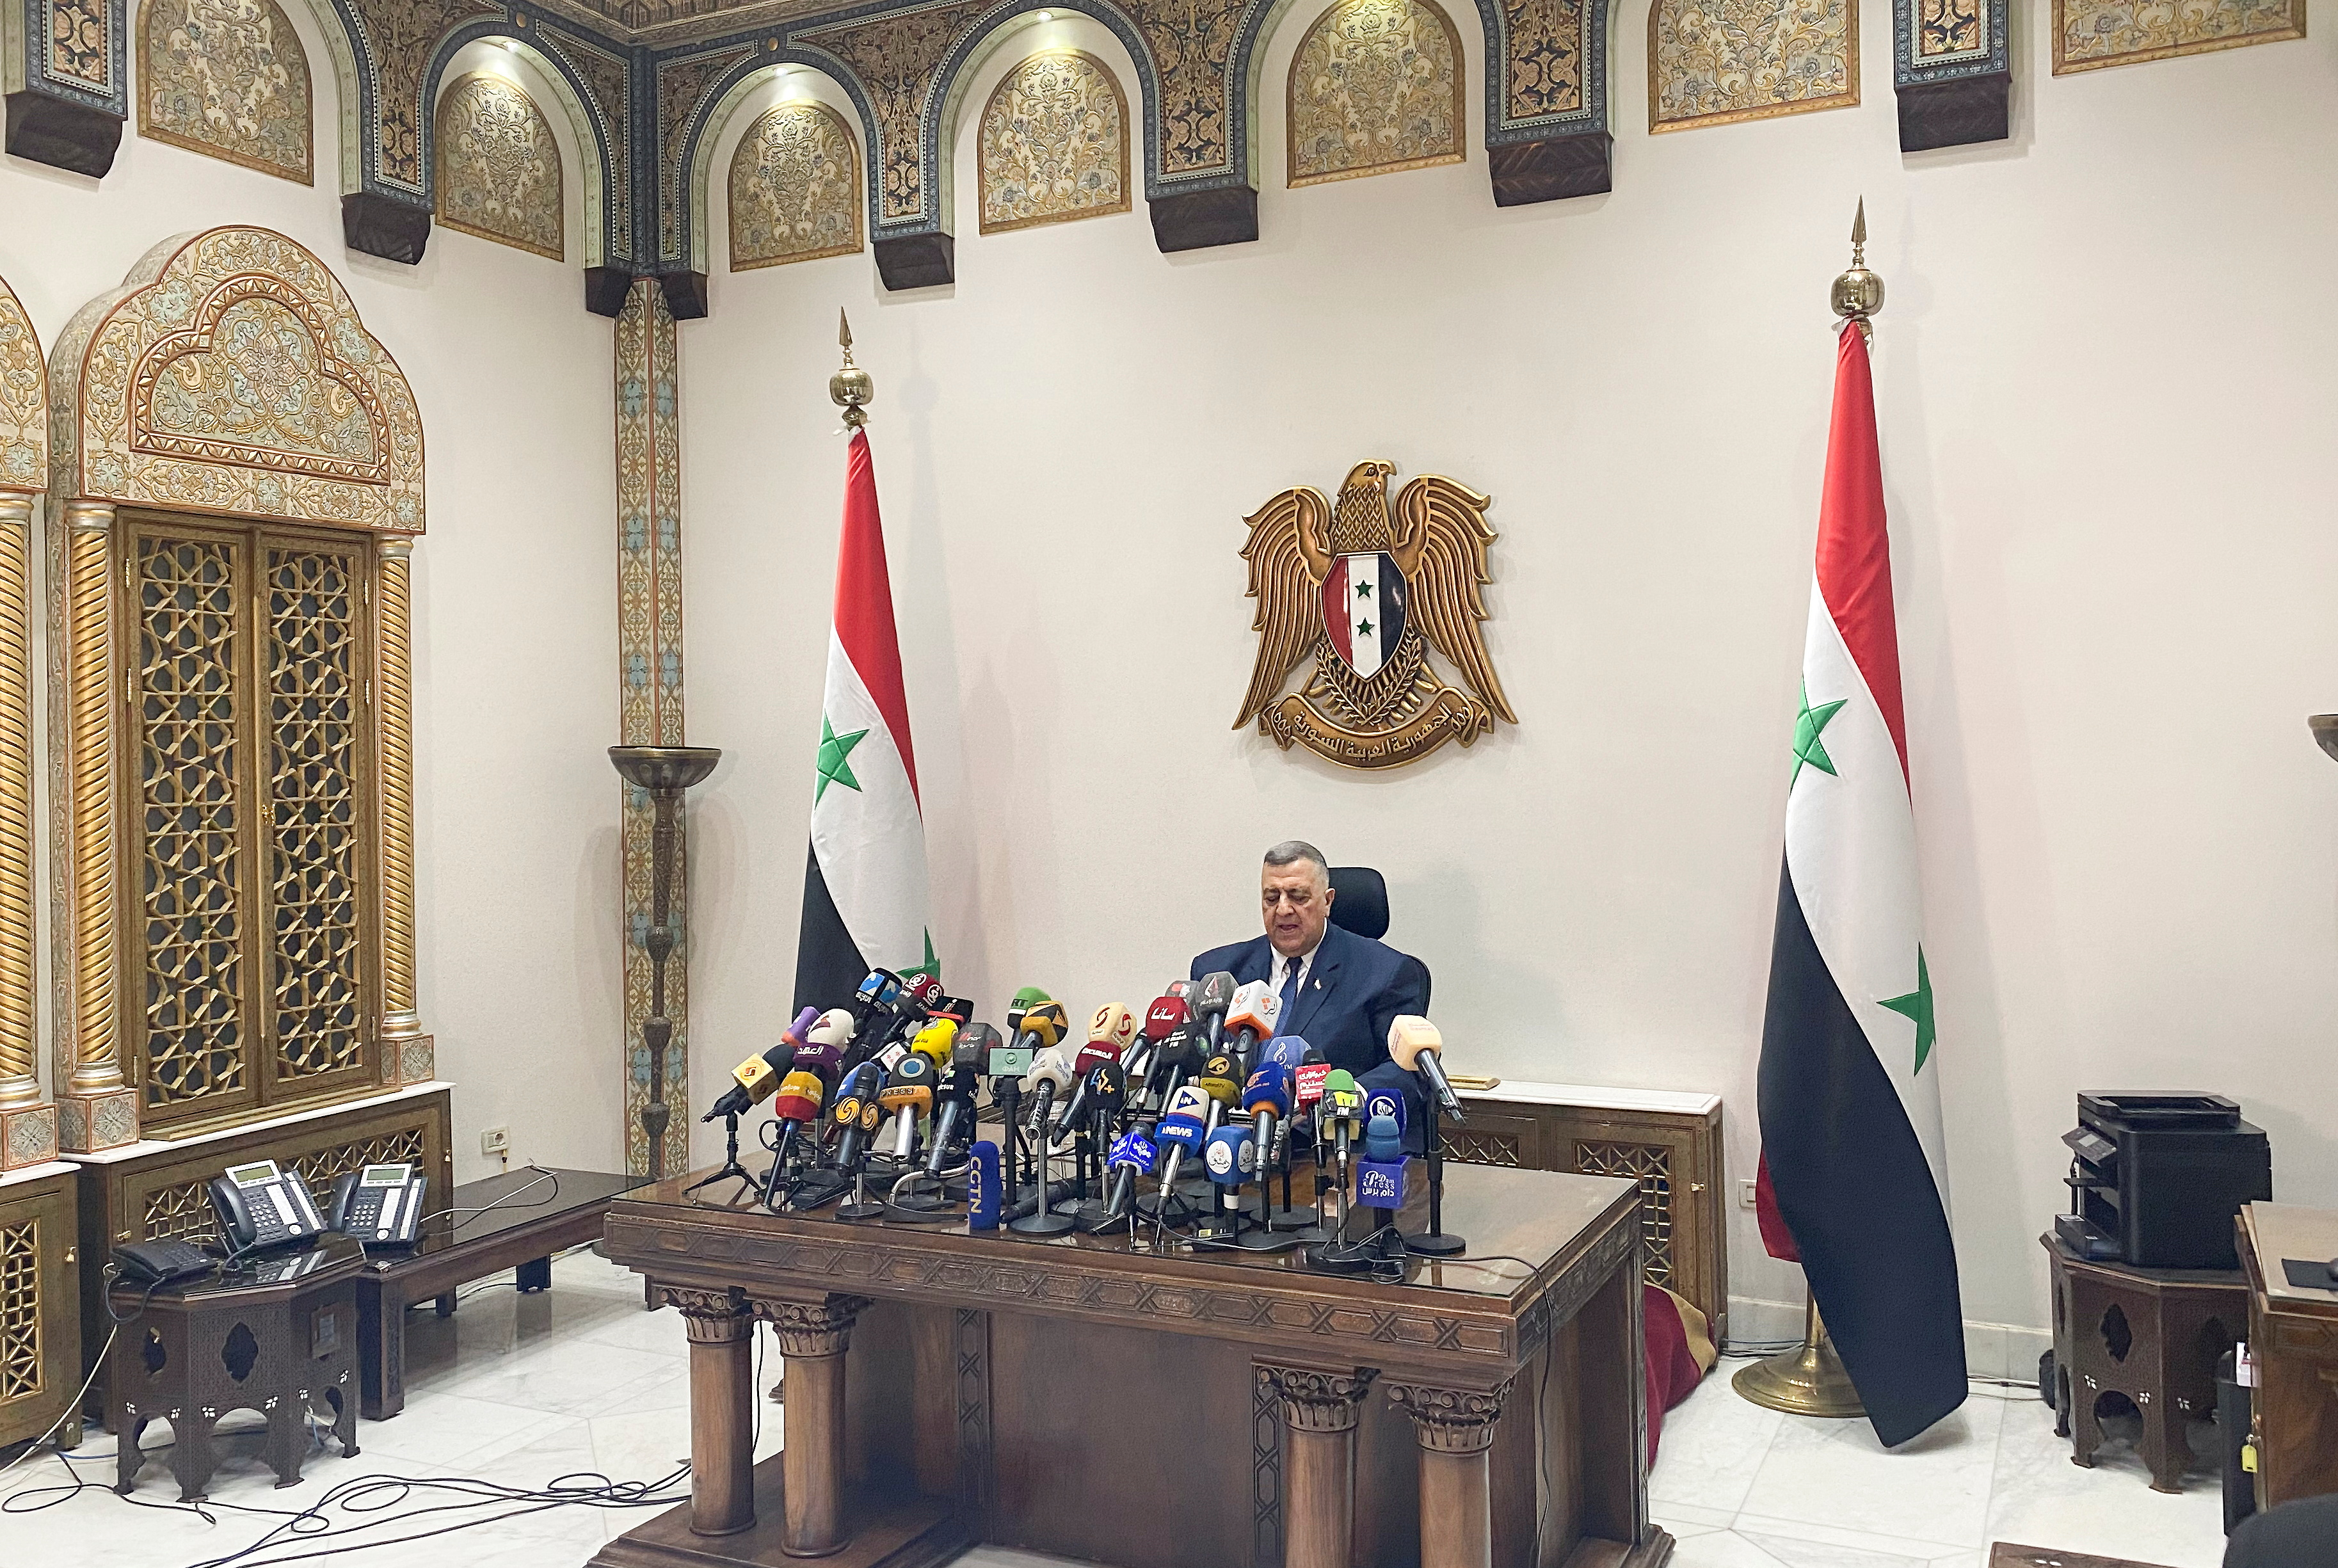 Parliament Speaker Hammouda Sabbagh announces the results of the Syrian presidential election at the Syrian parliament building in Damascus, Syria, May 27, 2021. REUTERS/Firas Makdesi